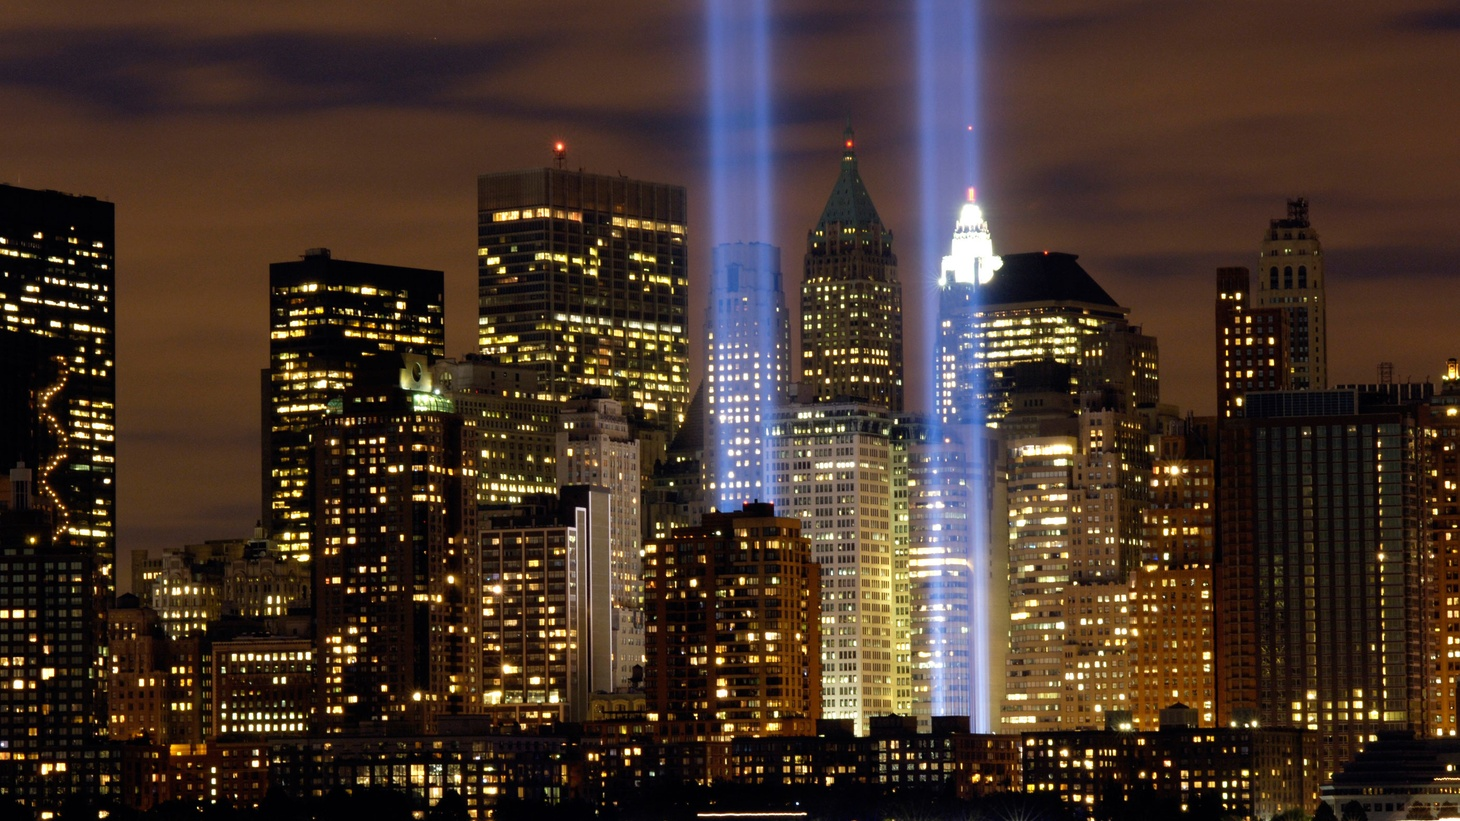 Guest host Todd Purdum discusses the legacy of the September 11 attacks, on the event of its 15th anniversary.